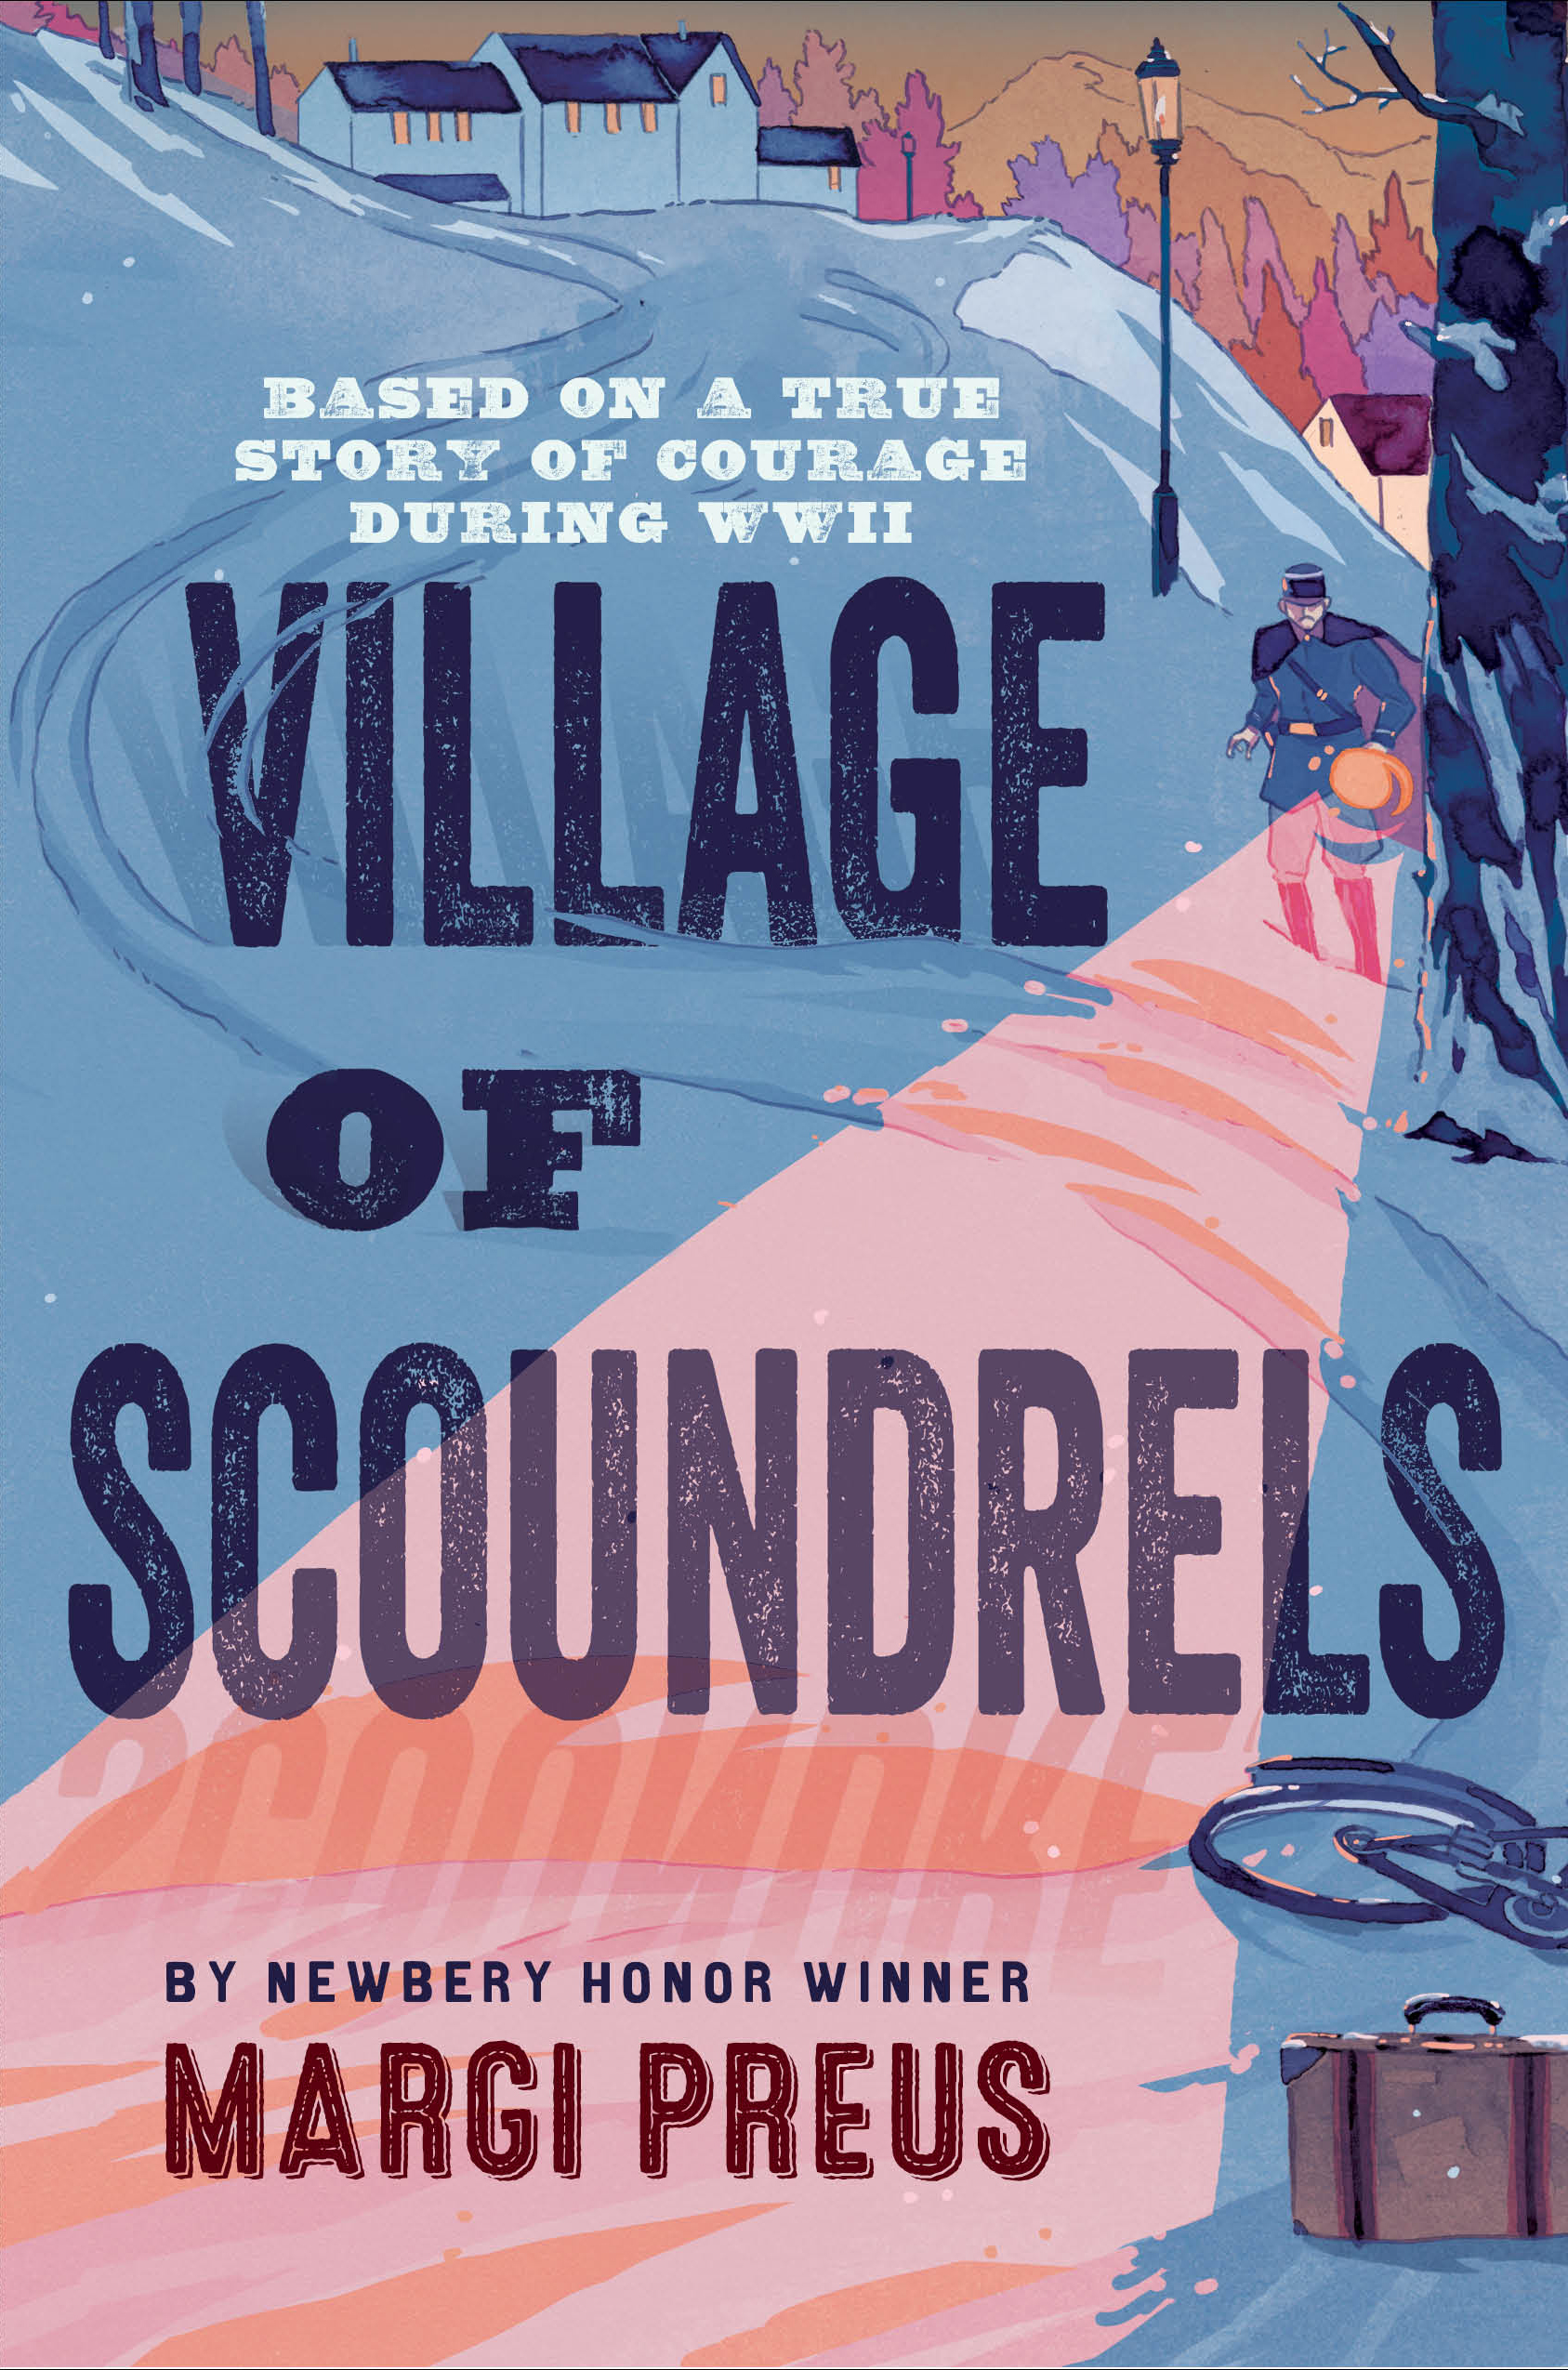 Village of ScoundrelsMargi Preus - Based on the true story of the French villagers in WWII who saved thousands of Jews, this novel tells how a group of young teenagers stood up for what is right. Among them is a young Jewish boy who learns to forge documents to save his mother and later goes on to save hundreds of lives with his forgery skills. There is also a girl who overcomes her fear to carry messages for the Resistance. And a boy who smuggles people into Switzerland.Read more here »